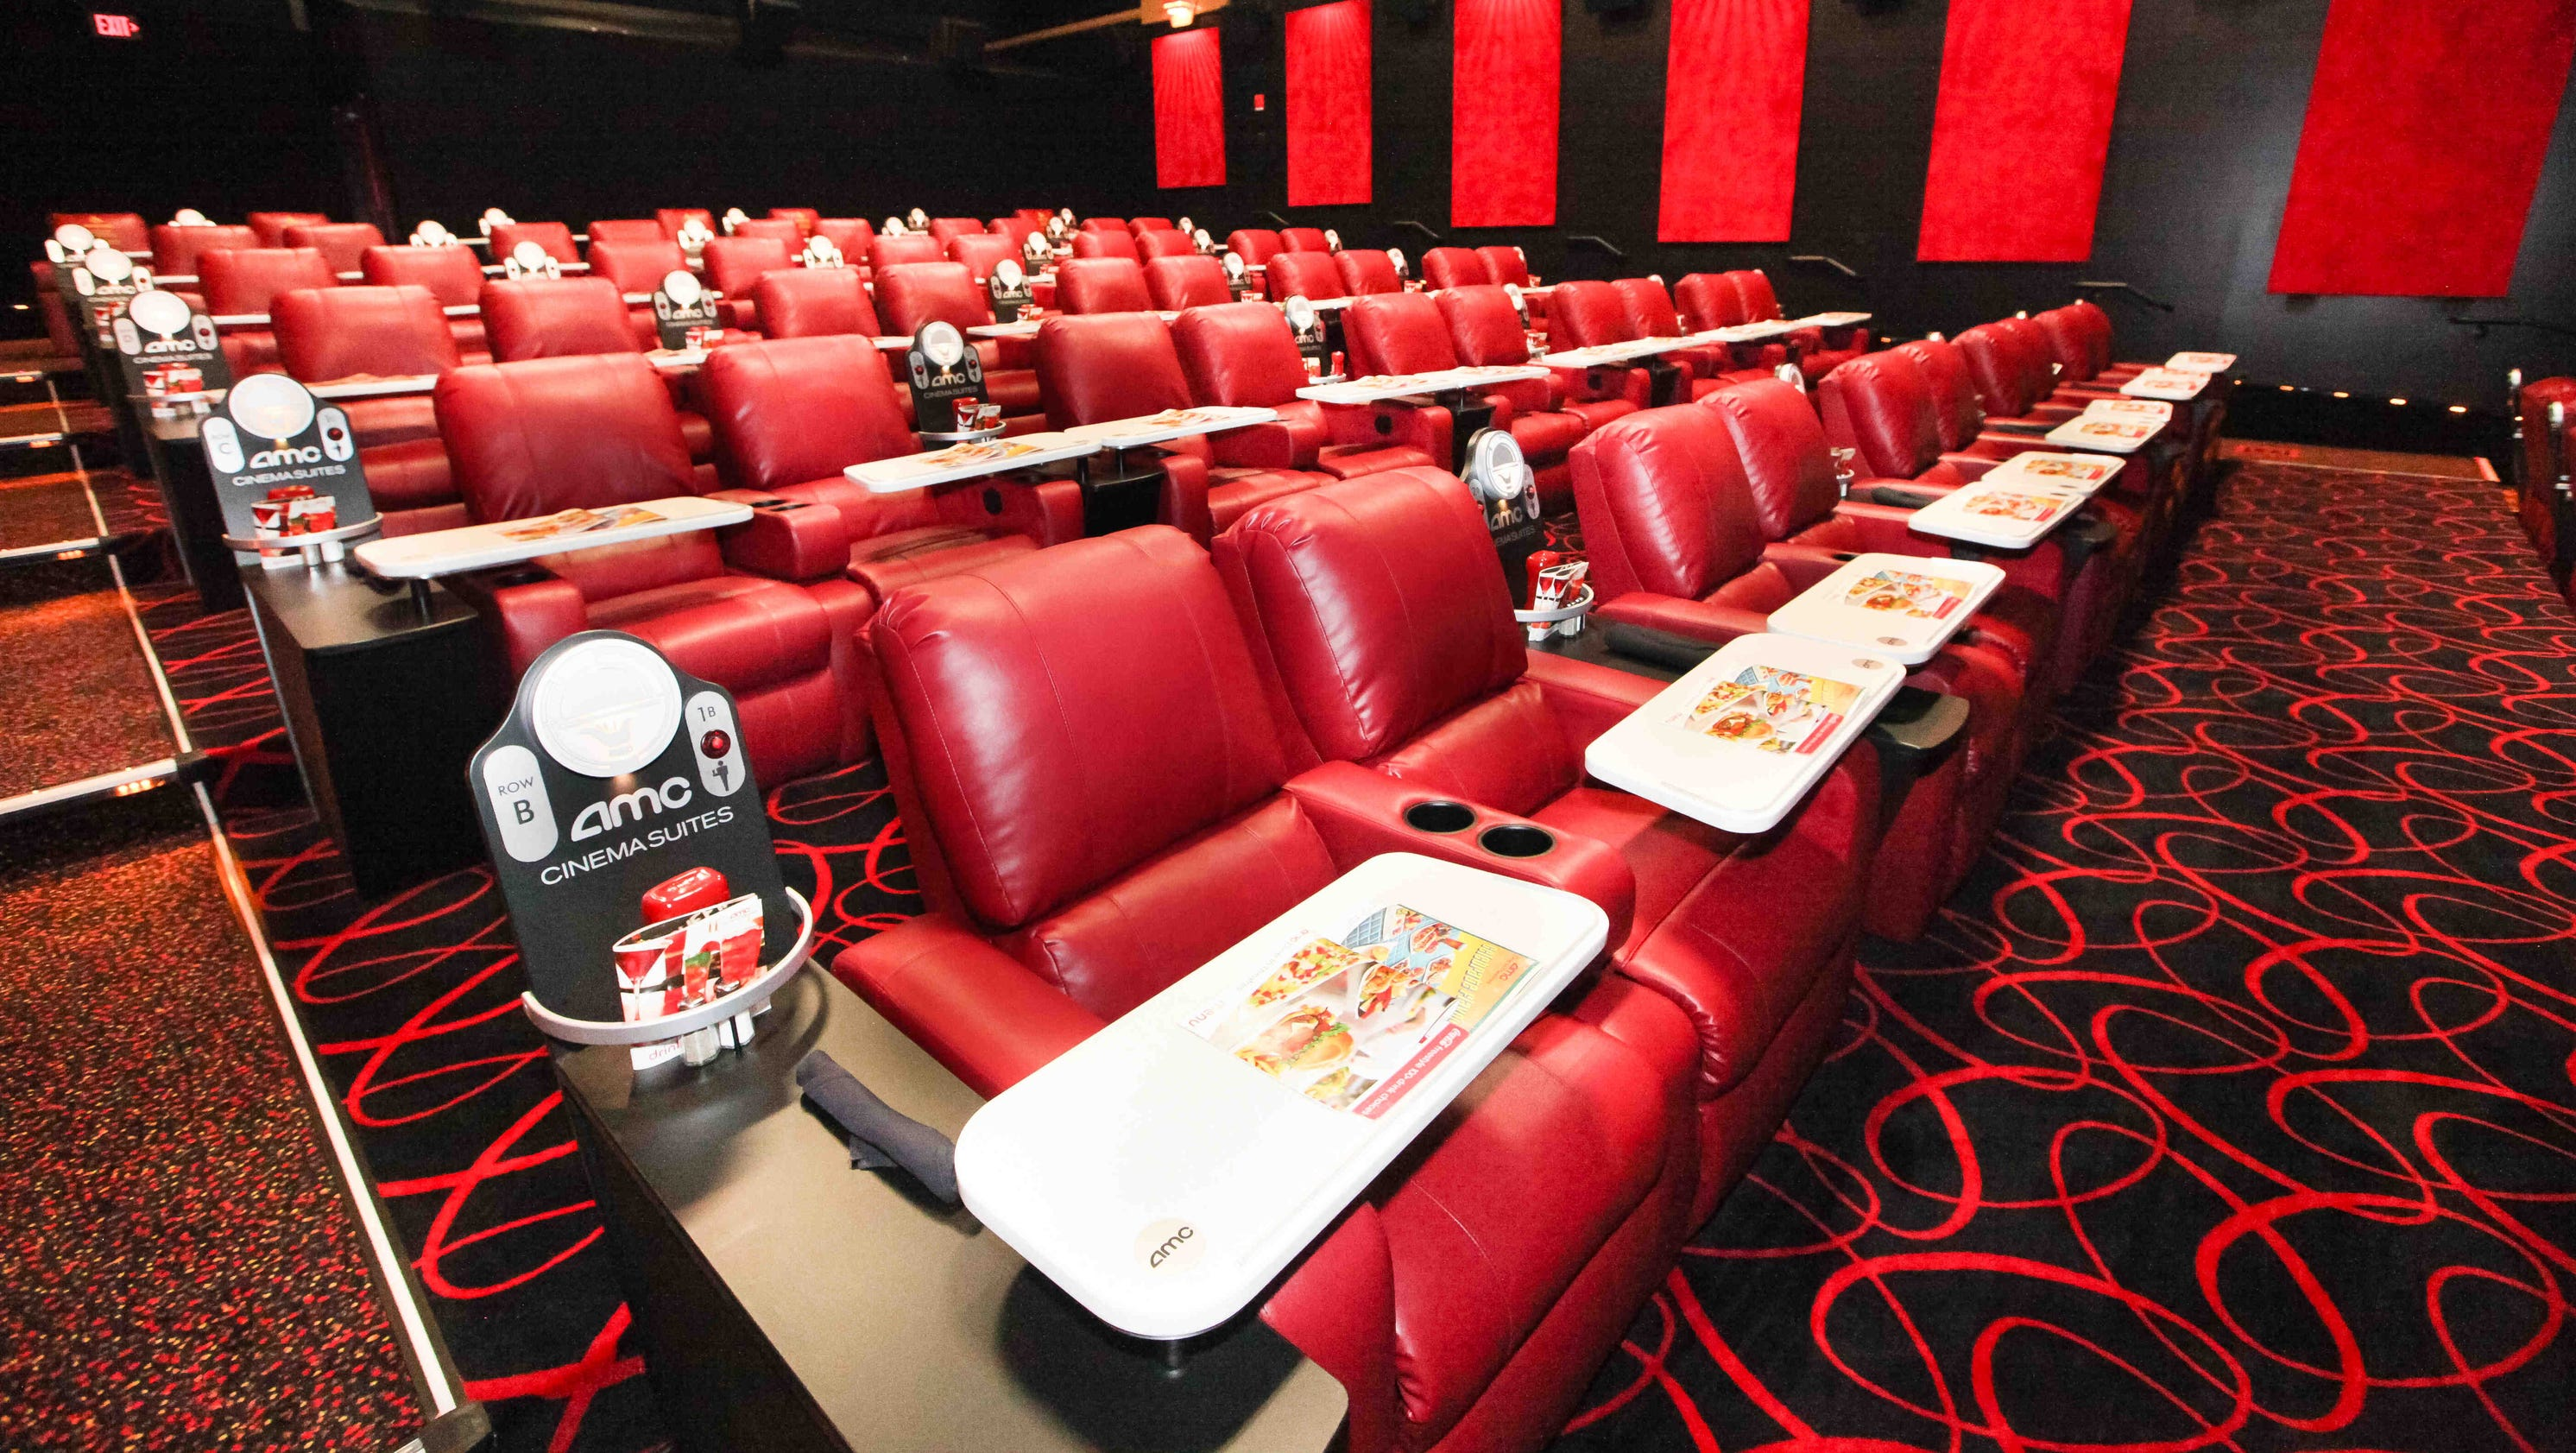 For a truly unforgettable movie-going experience, do what nearly million people do each year and check out AMC Theatres. With more than locations nationally, AMC offers a variety of cinematic experience at multiplexes, IMAX theatres, AMC Dine-In theatres, and more.